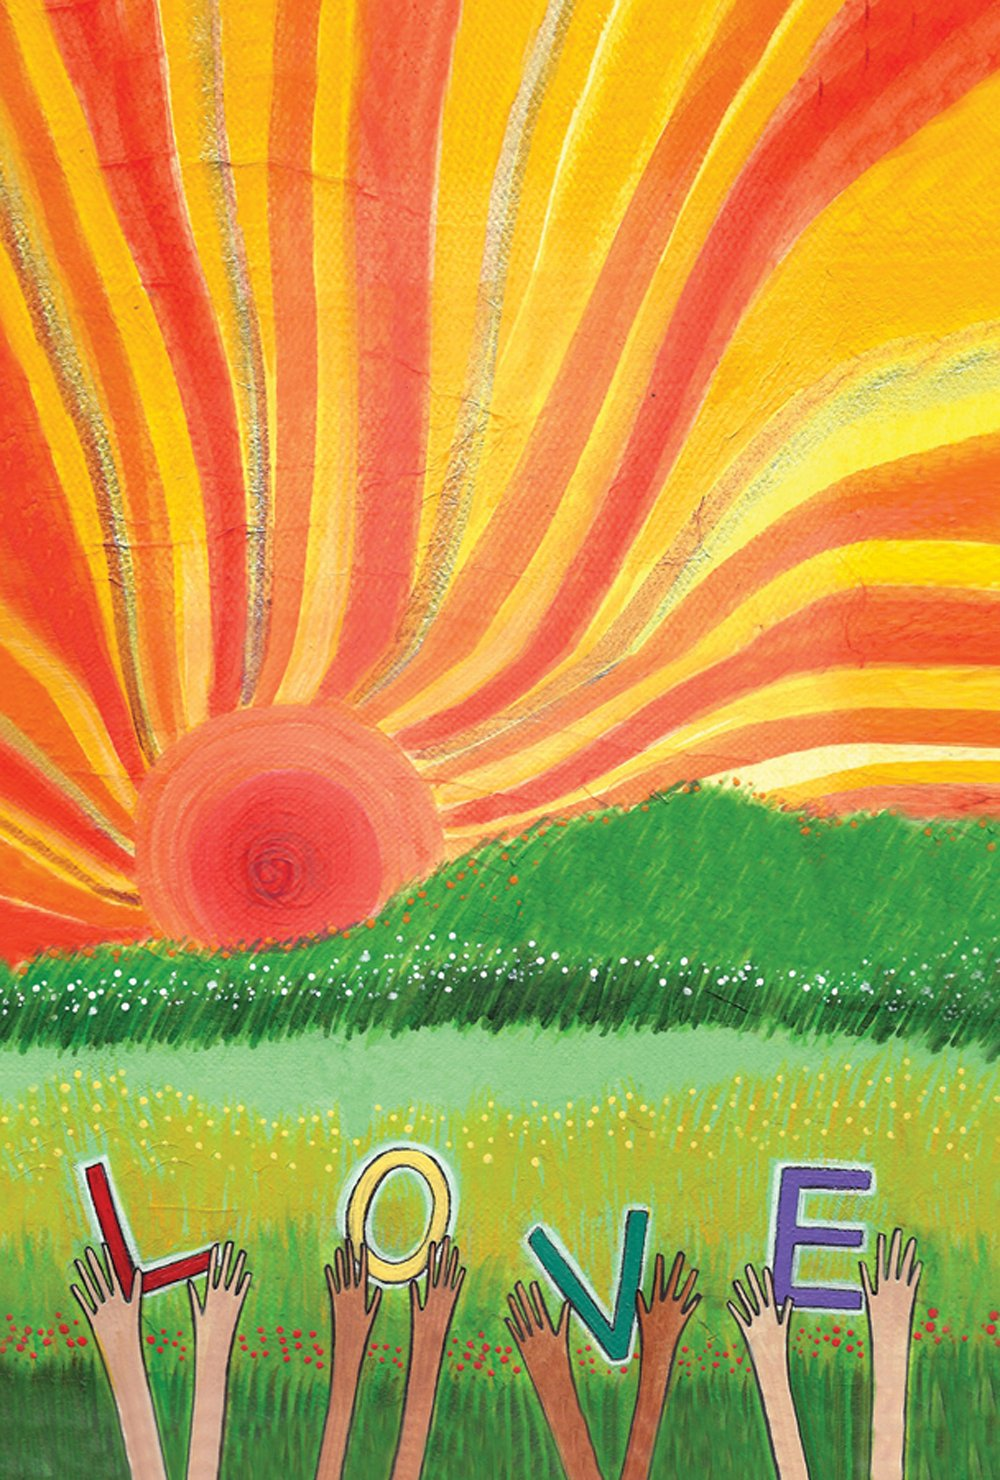 Toland Home Garden Sunset Love 12.5 x 18 Inch Decorative Colorful Spring Summer Sun Field Hands Garden Flag